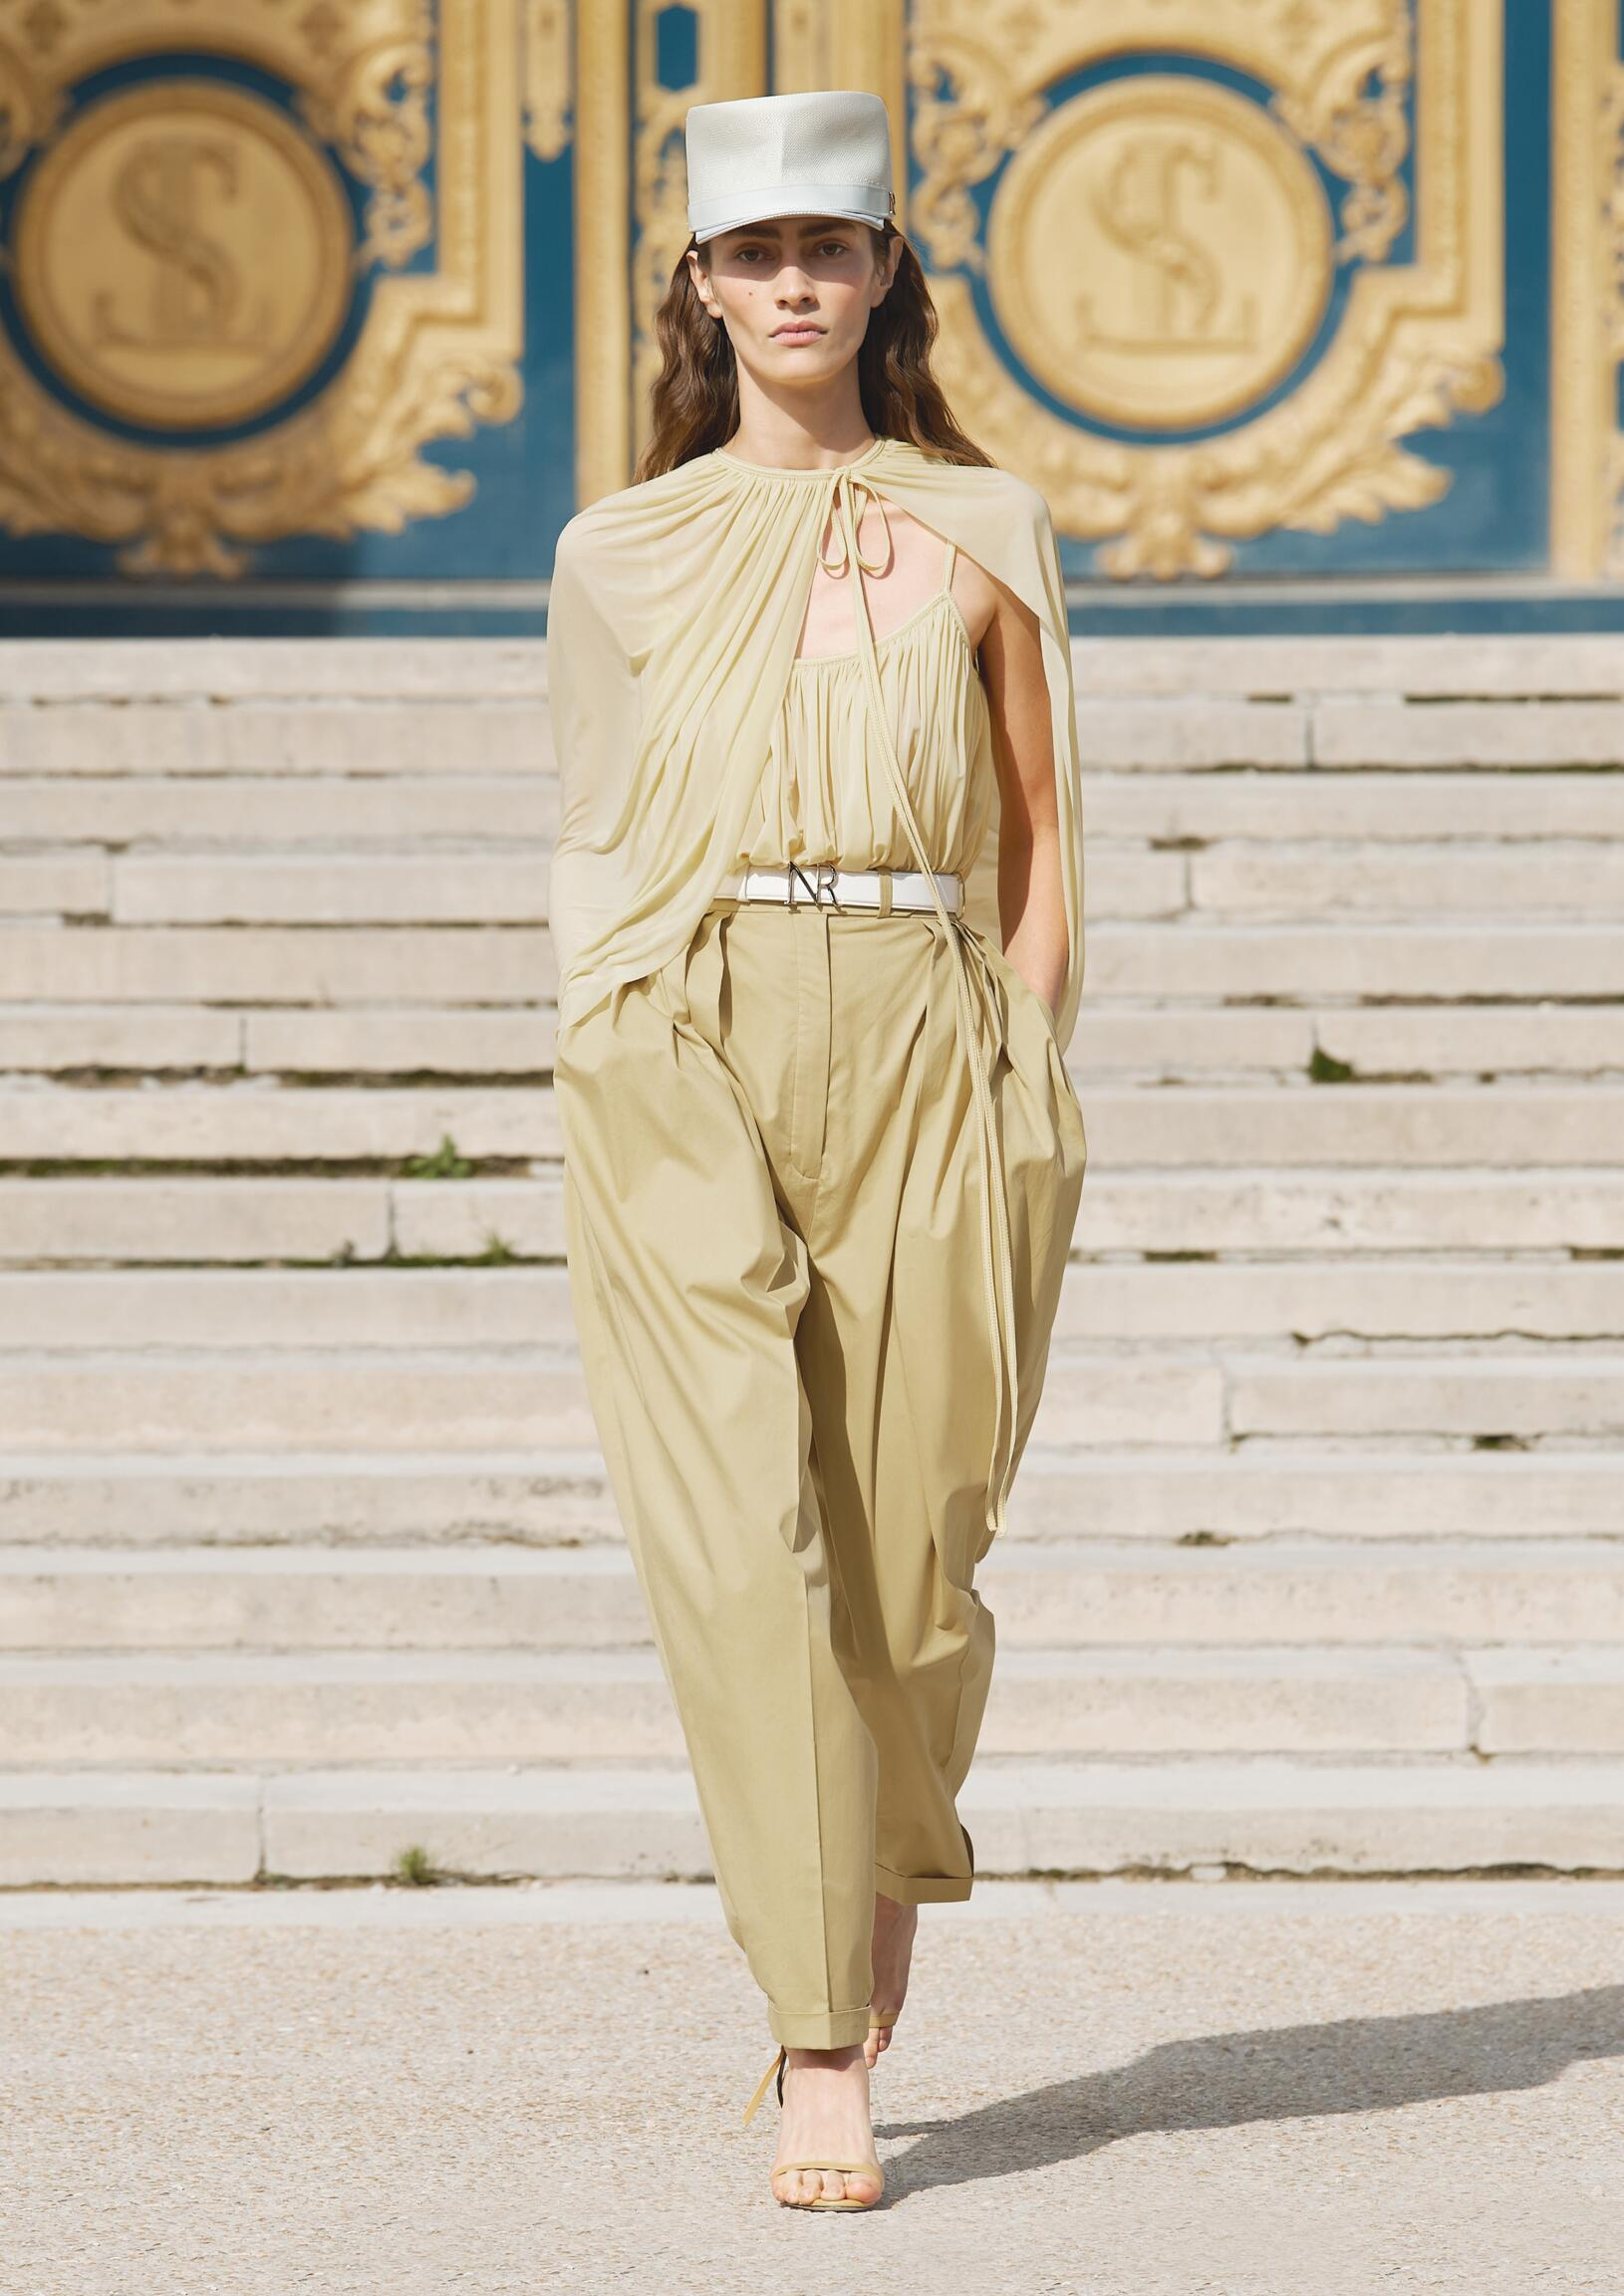 Fashion Woman Model Nina Ricci Catwalk